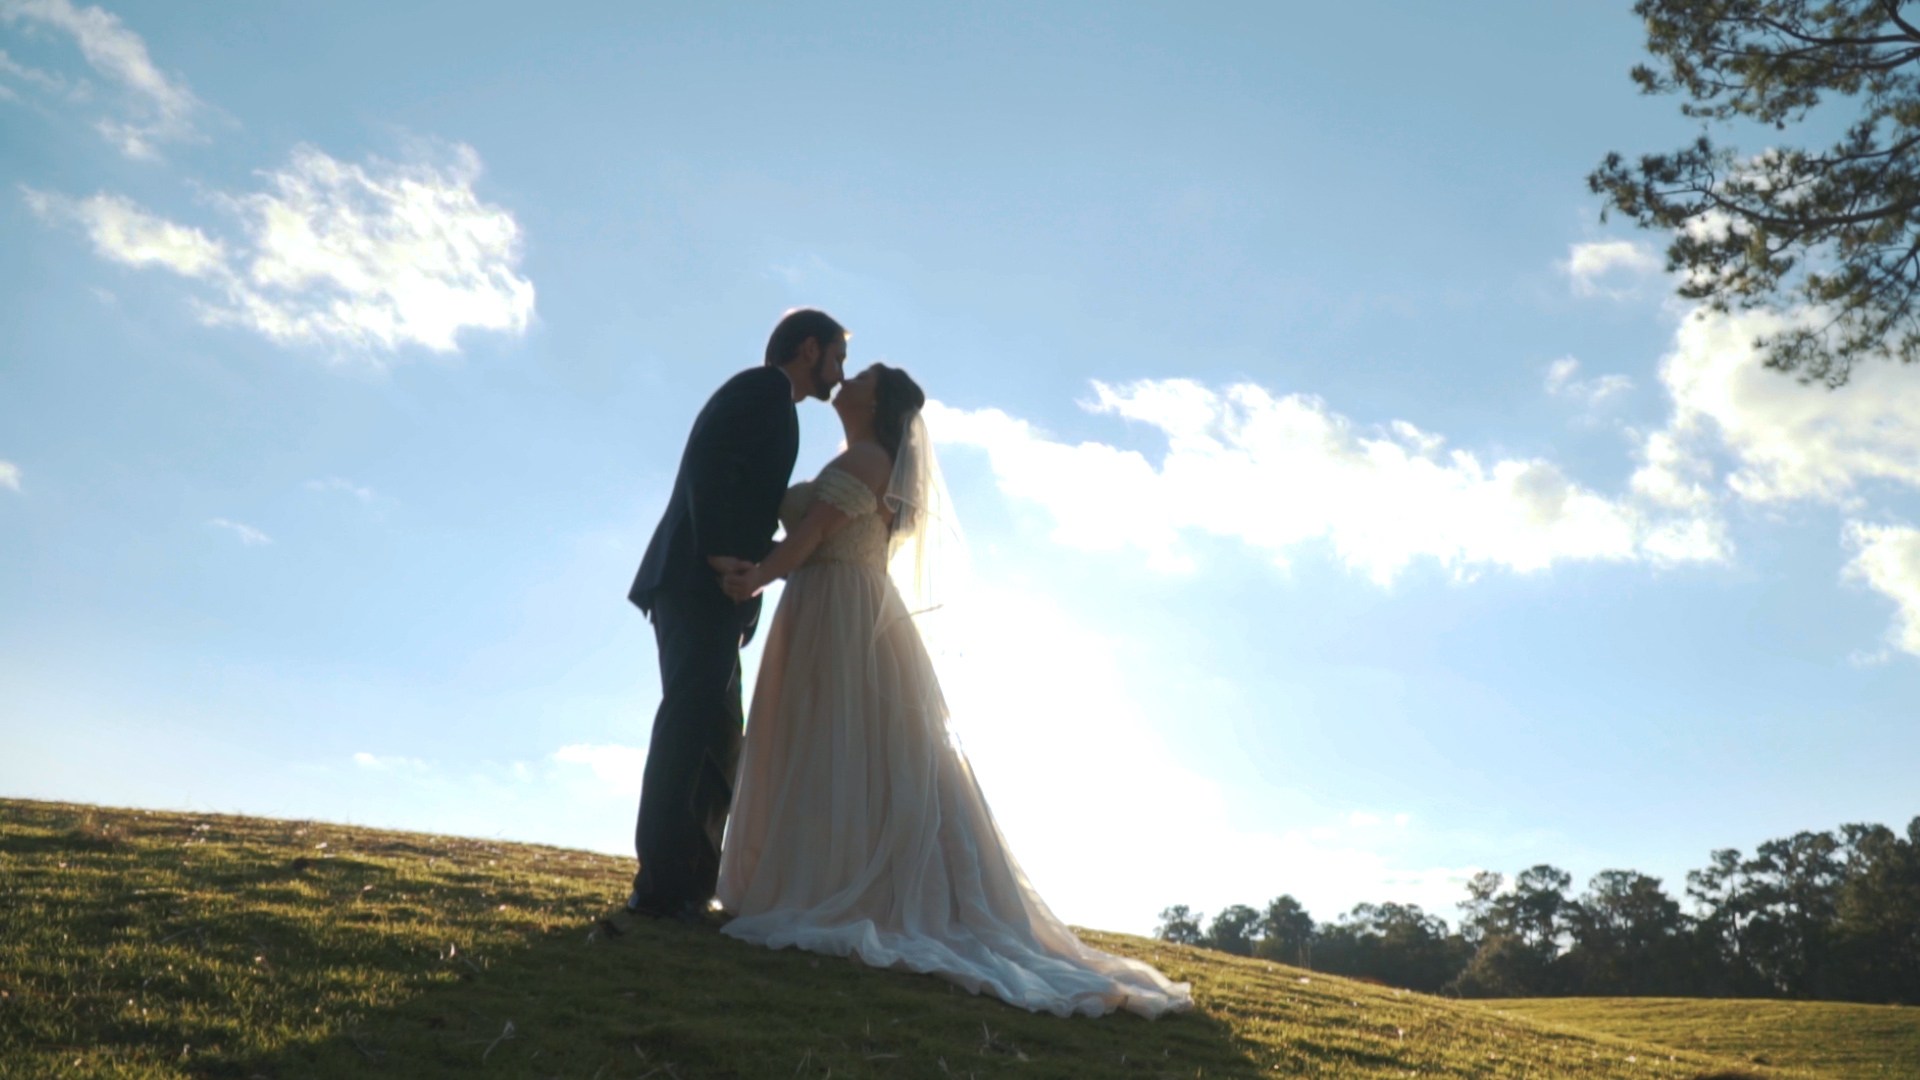 Bride and groom hold hands and read letters to one another during first touch on wedding day.